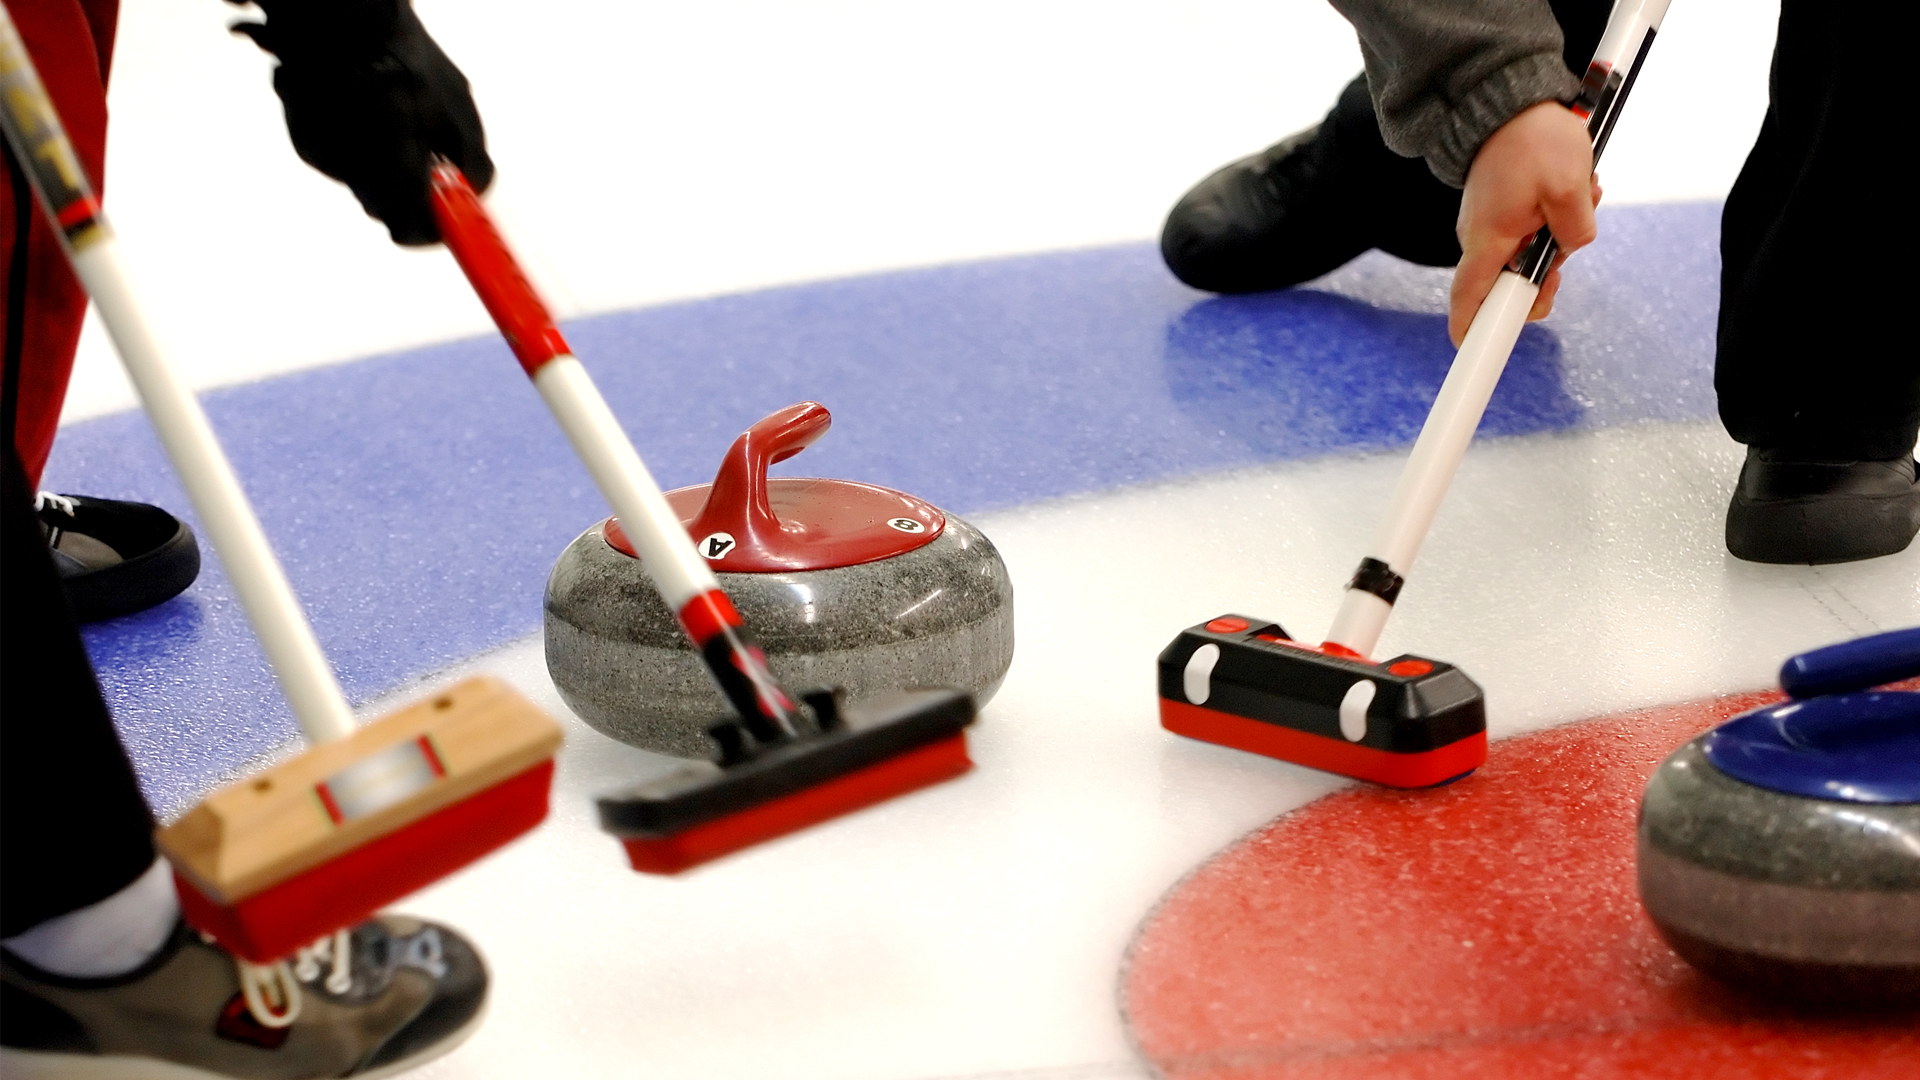 Curling imagery